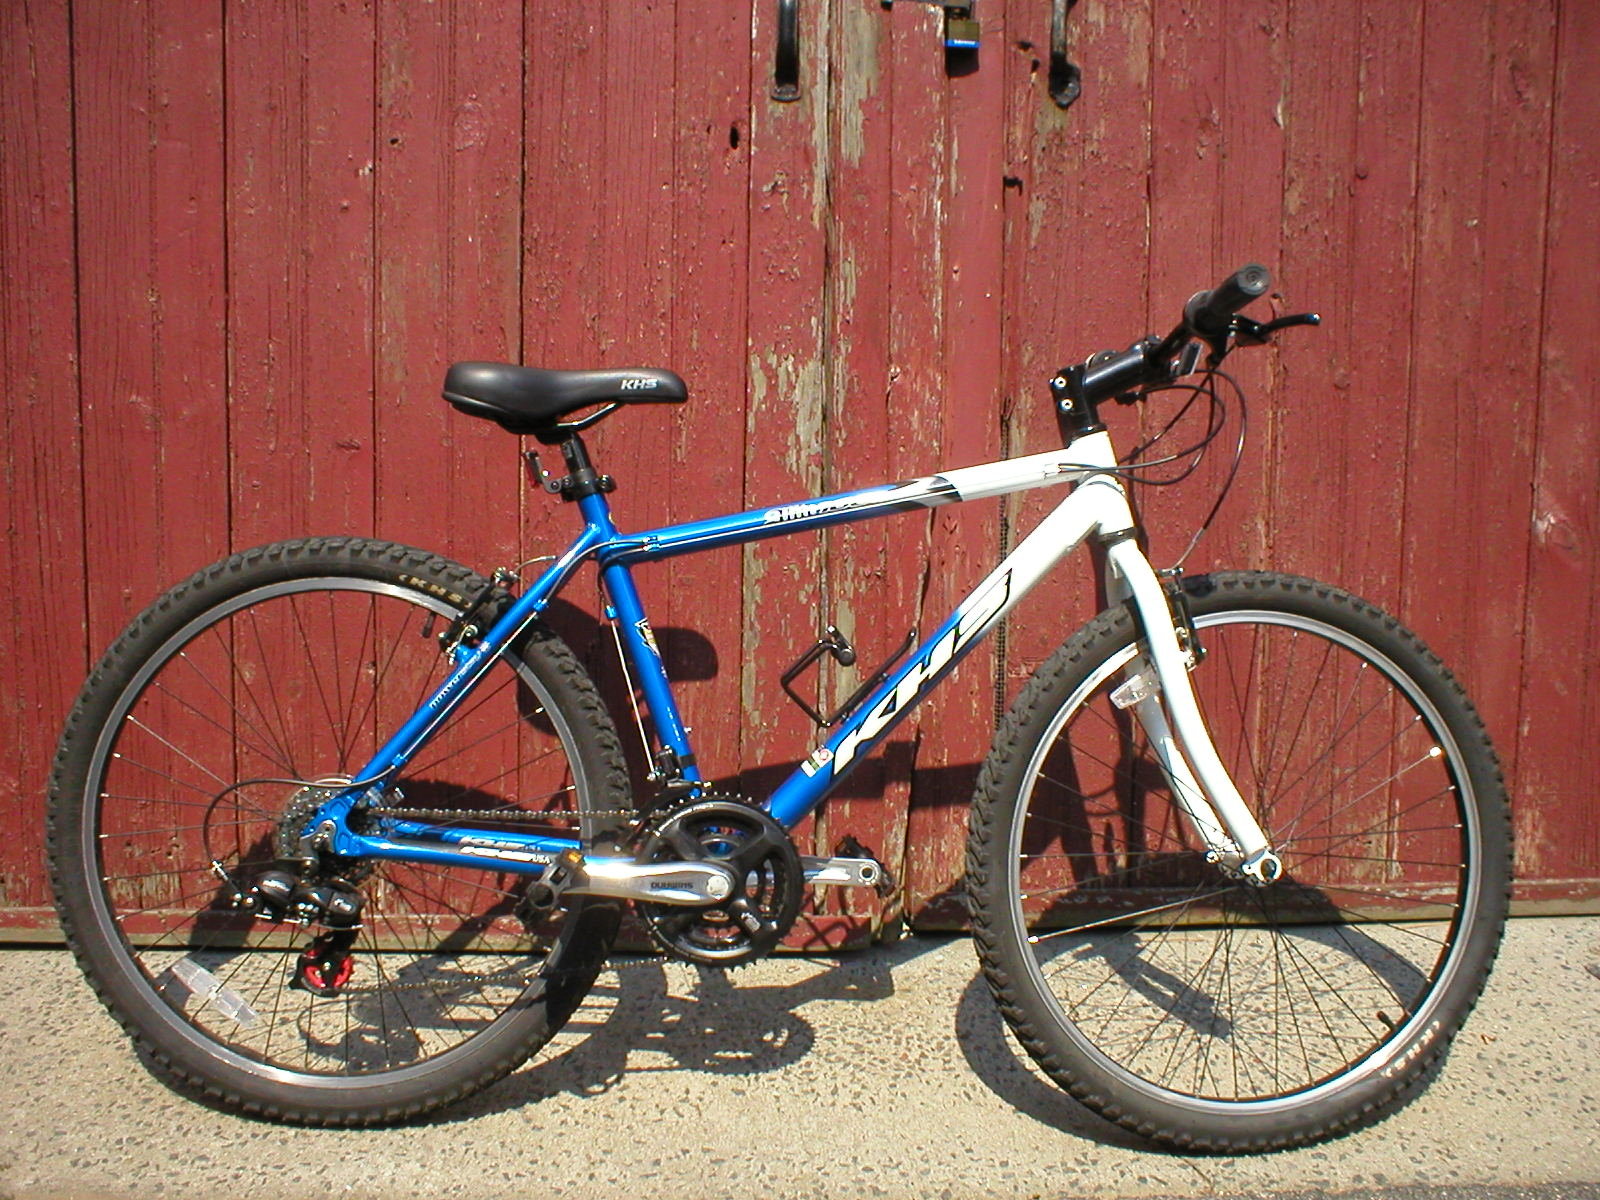 Bikes Khs A KHS mountain bike